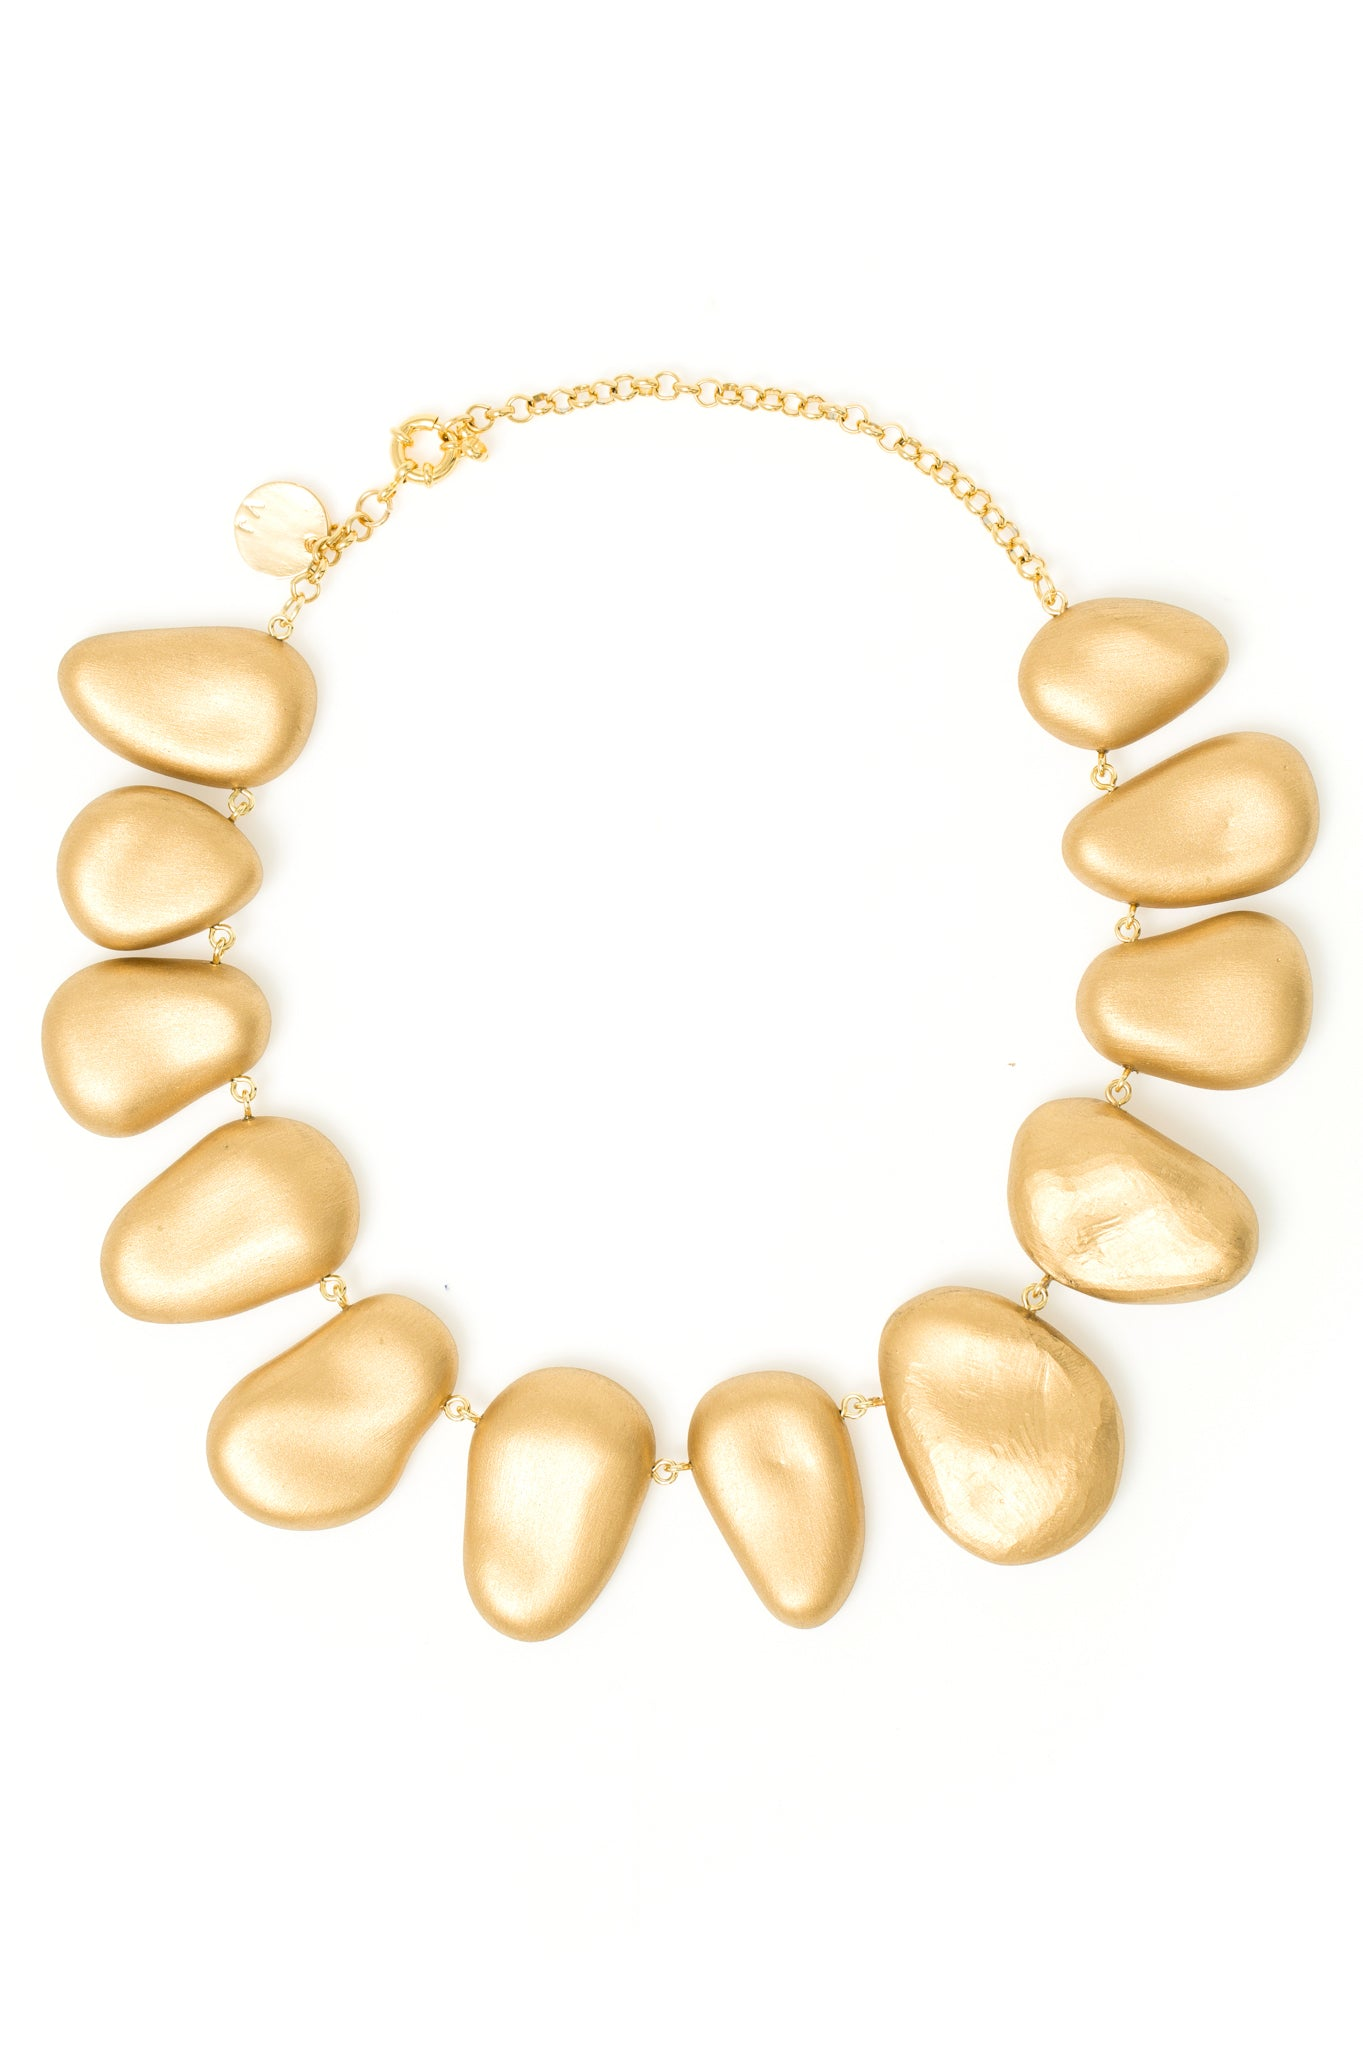 Organic gold stones necklace